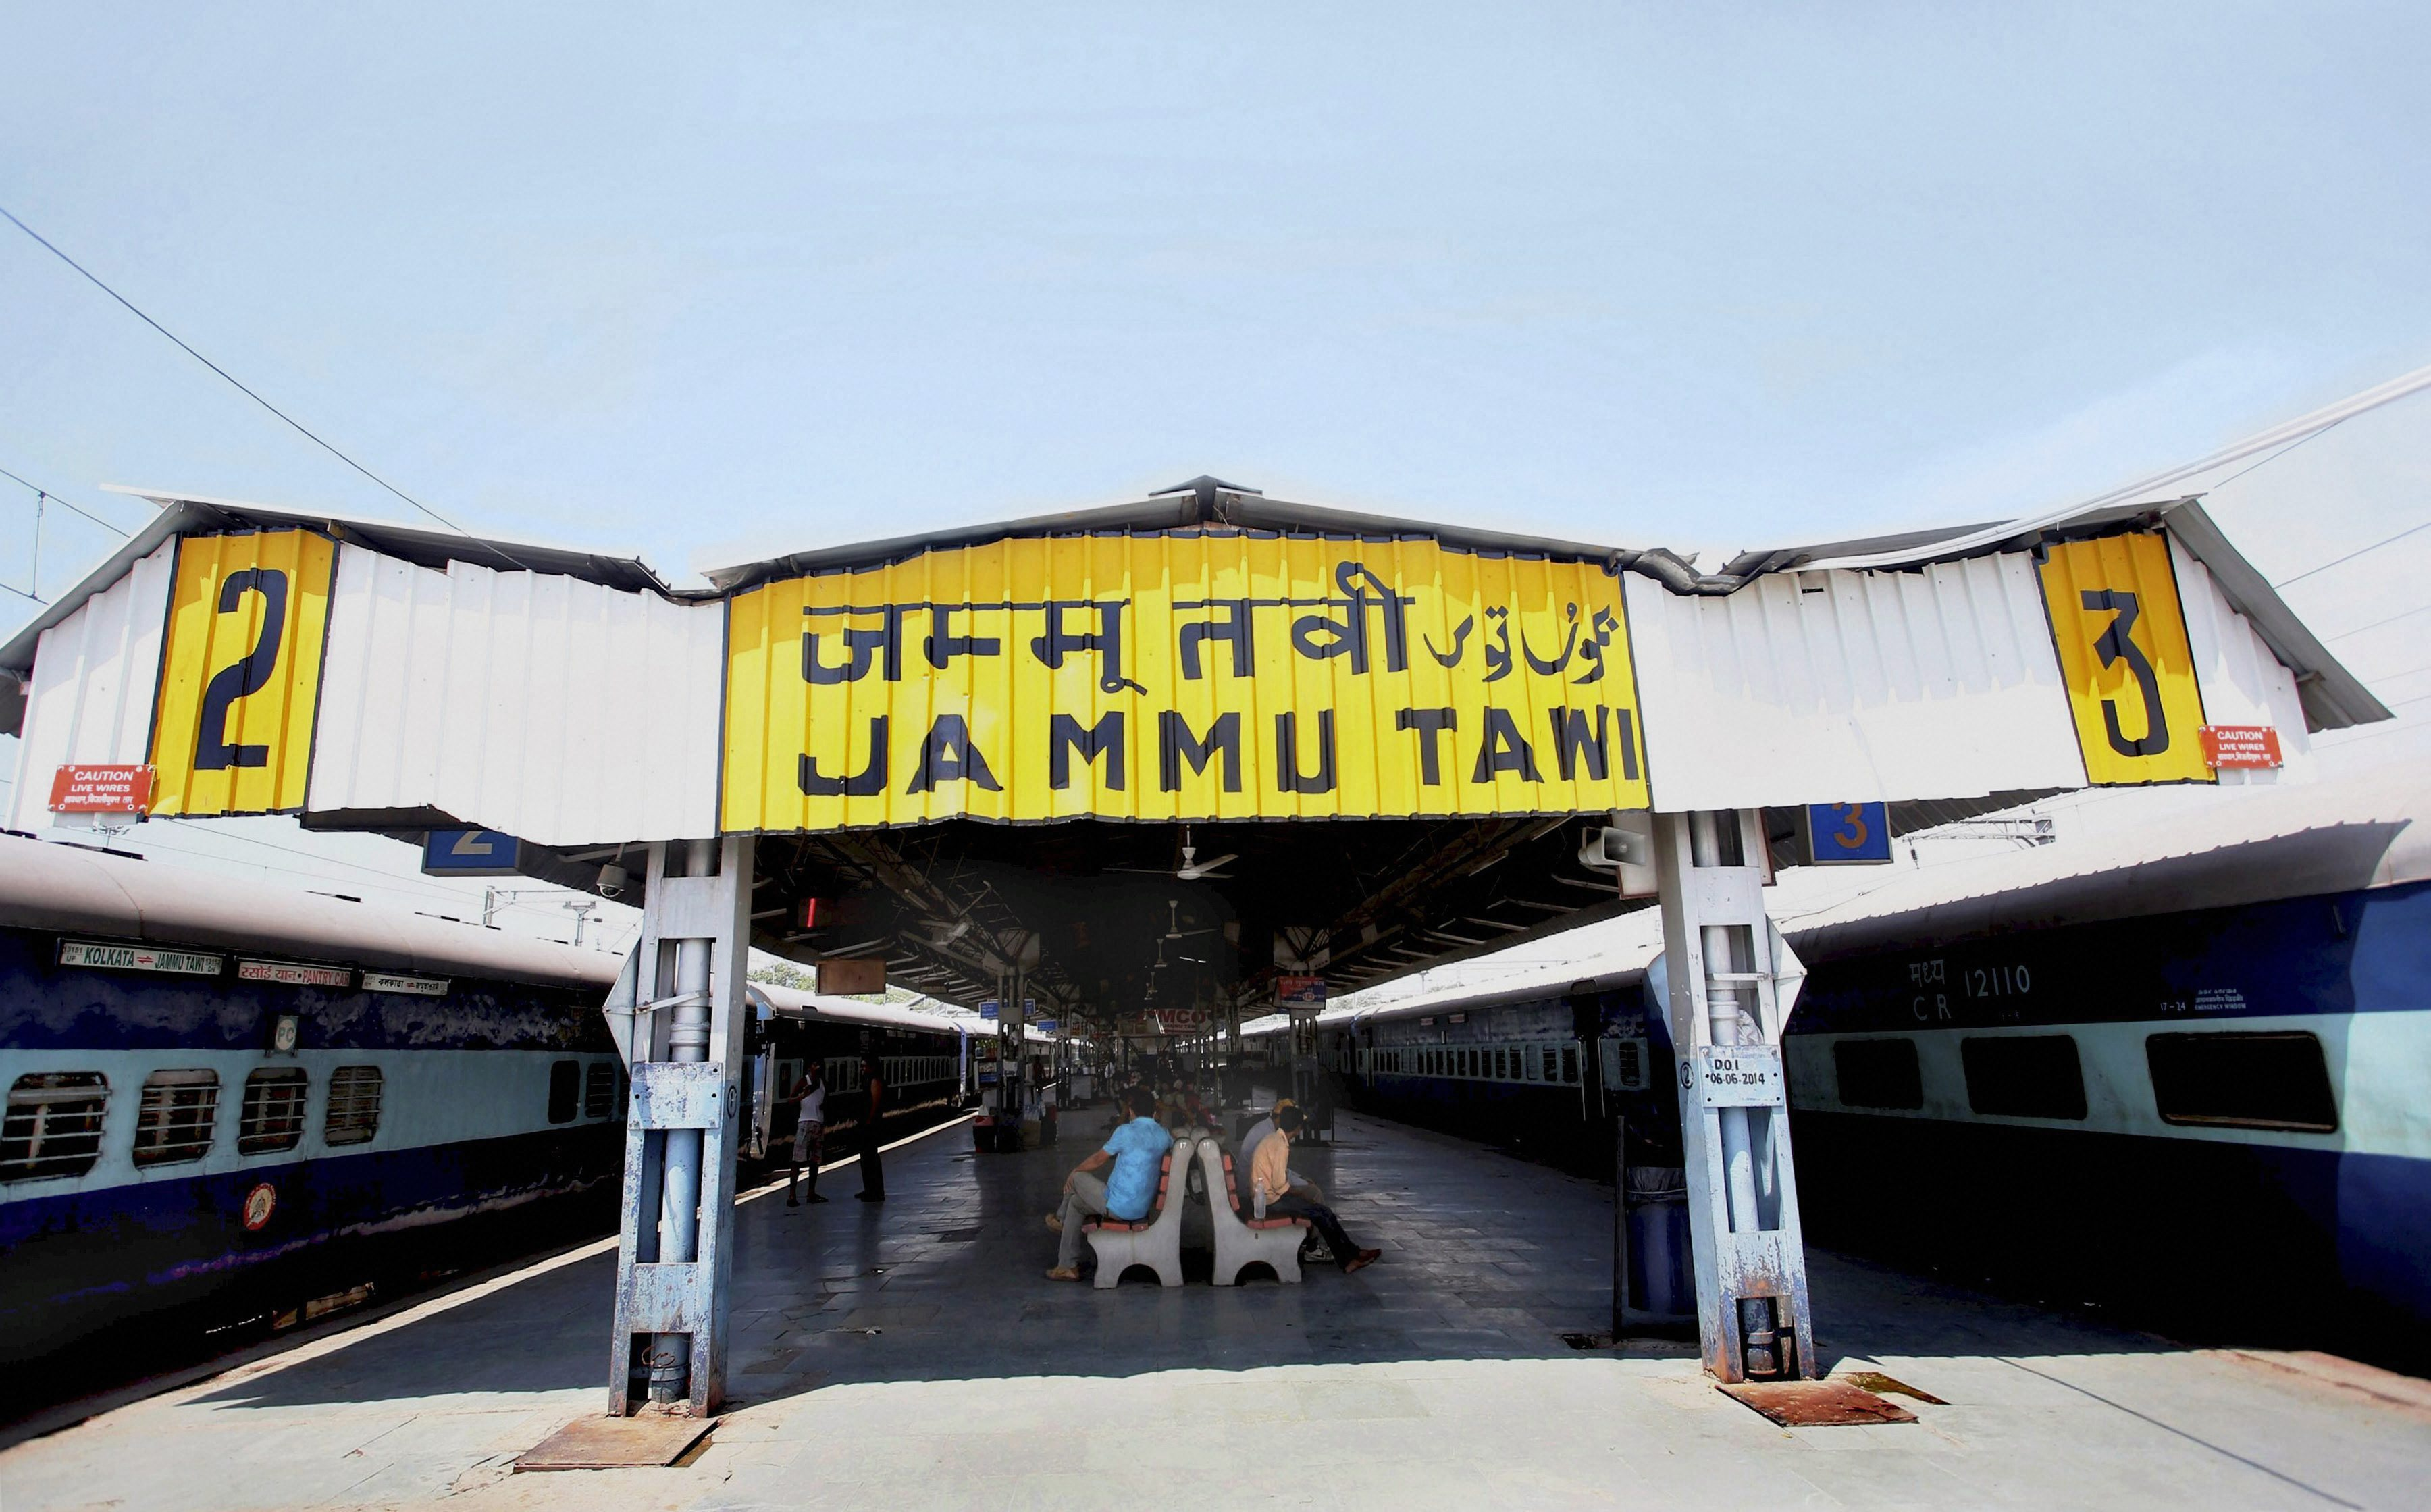 Jammu: Jammu railway station wears a deserted look as operations of many trains were halted after receiving a formal request from the Punjab and Haryana governments in view of the verdict in a case against Dera Sacha Sauda chief Gurmeet Ram Rahim on Friday. PTI Photo(PTI8_25_2017_000063A)